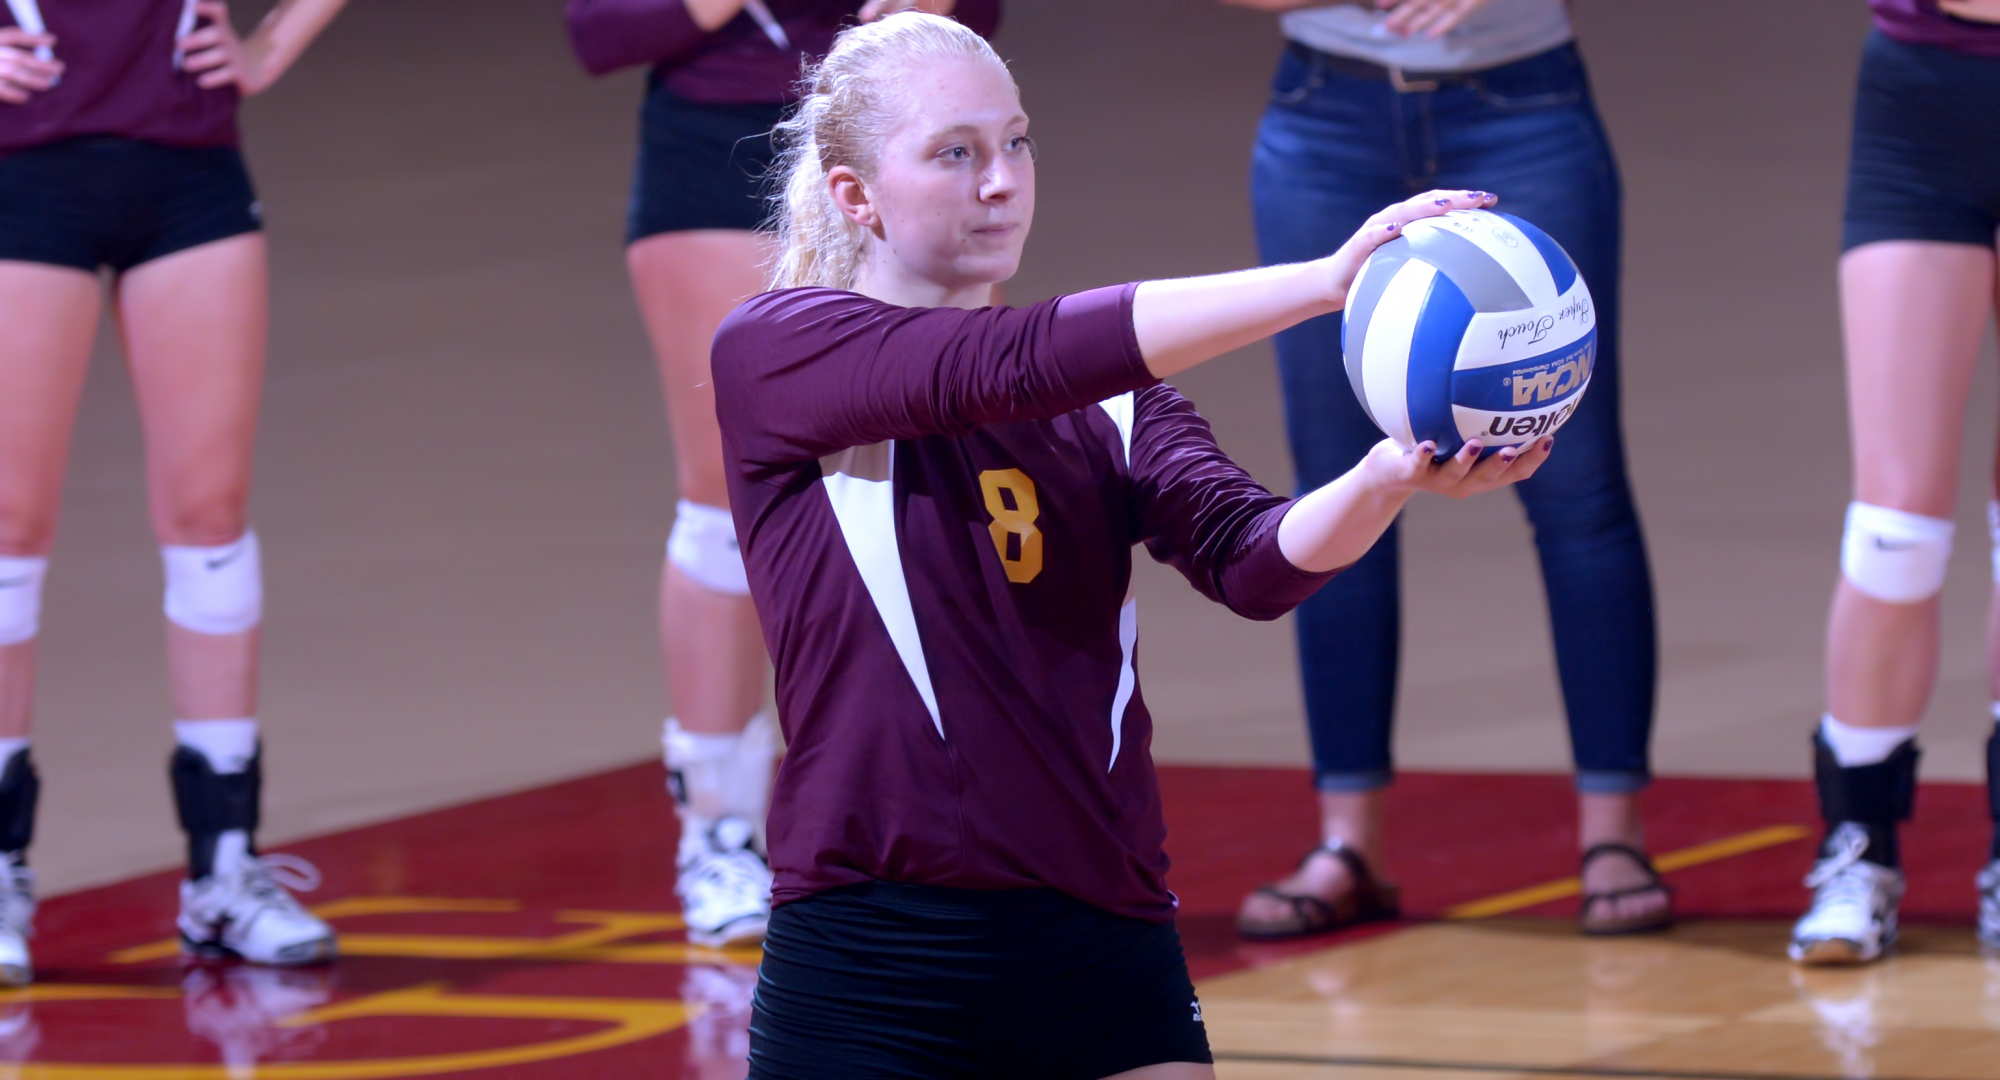 Sophomore Brianna Carney was named to the All-Tournament Team after leading the Cobbers at the season-opening Northwestern Invite.